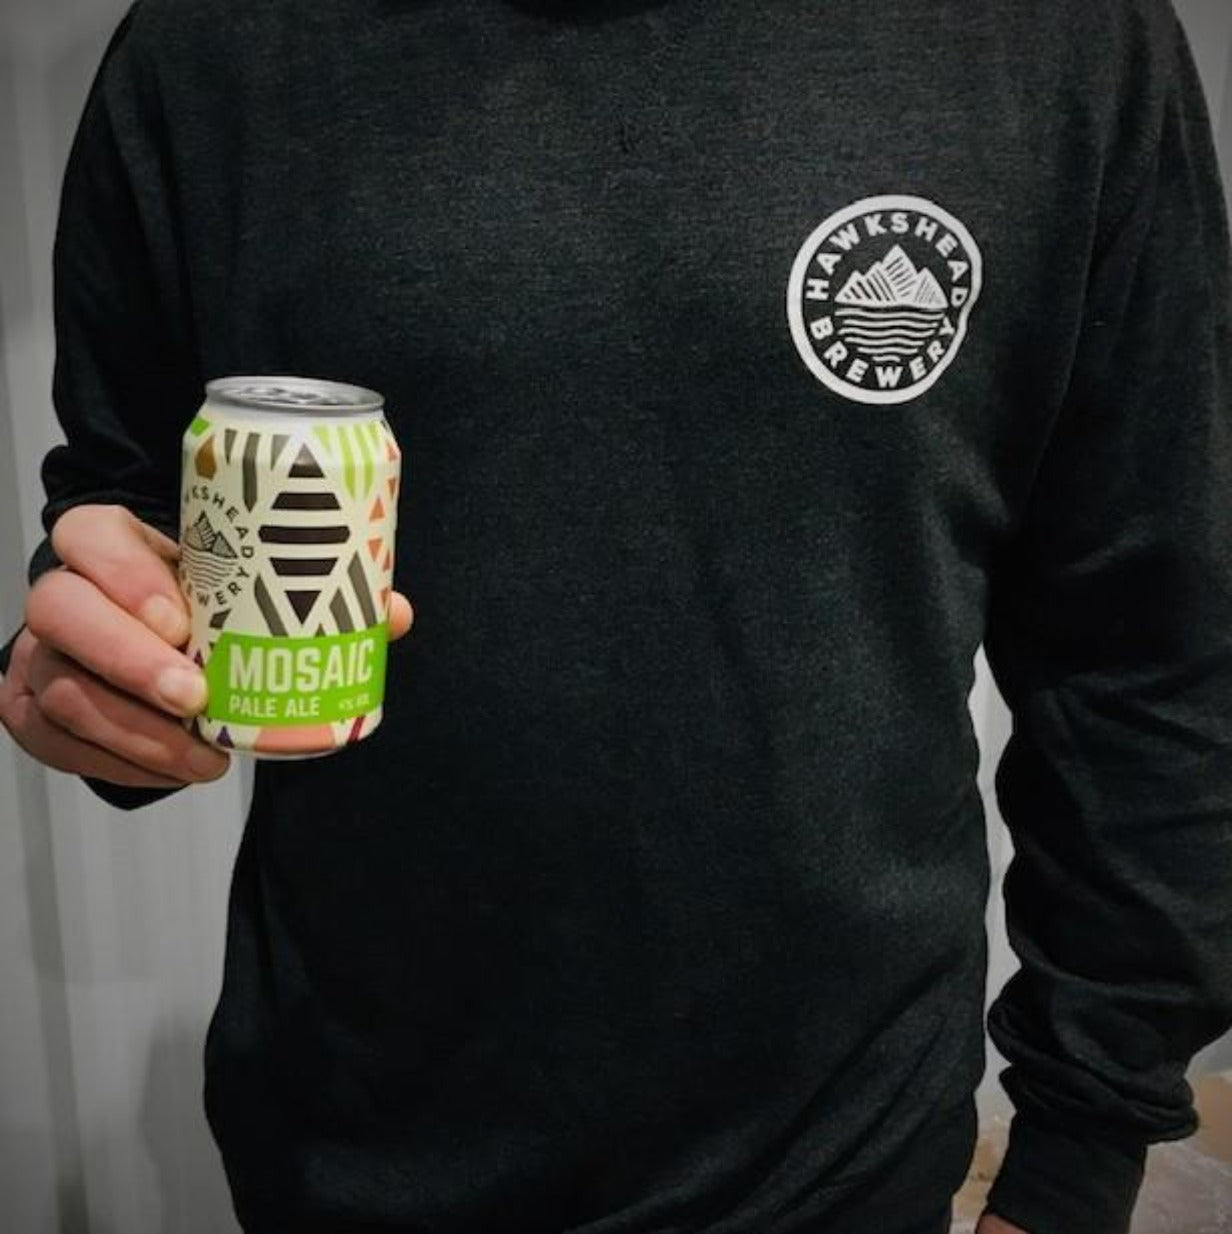 Hawkshead Brewery - Mosaic Cans 12x330ml and Heather Sweater